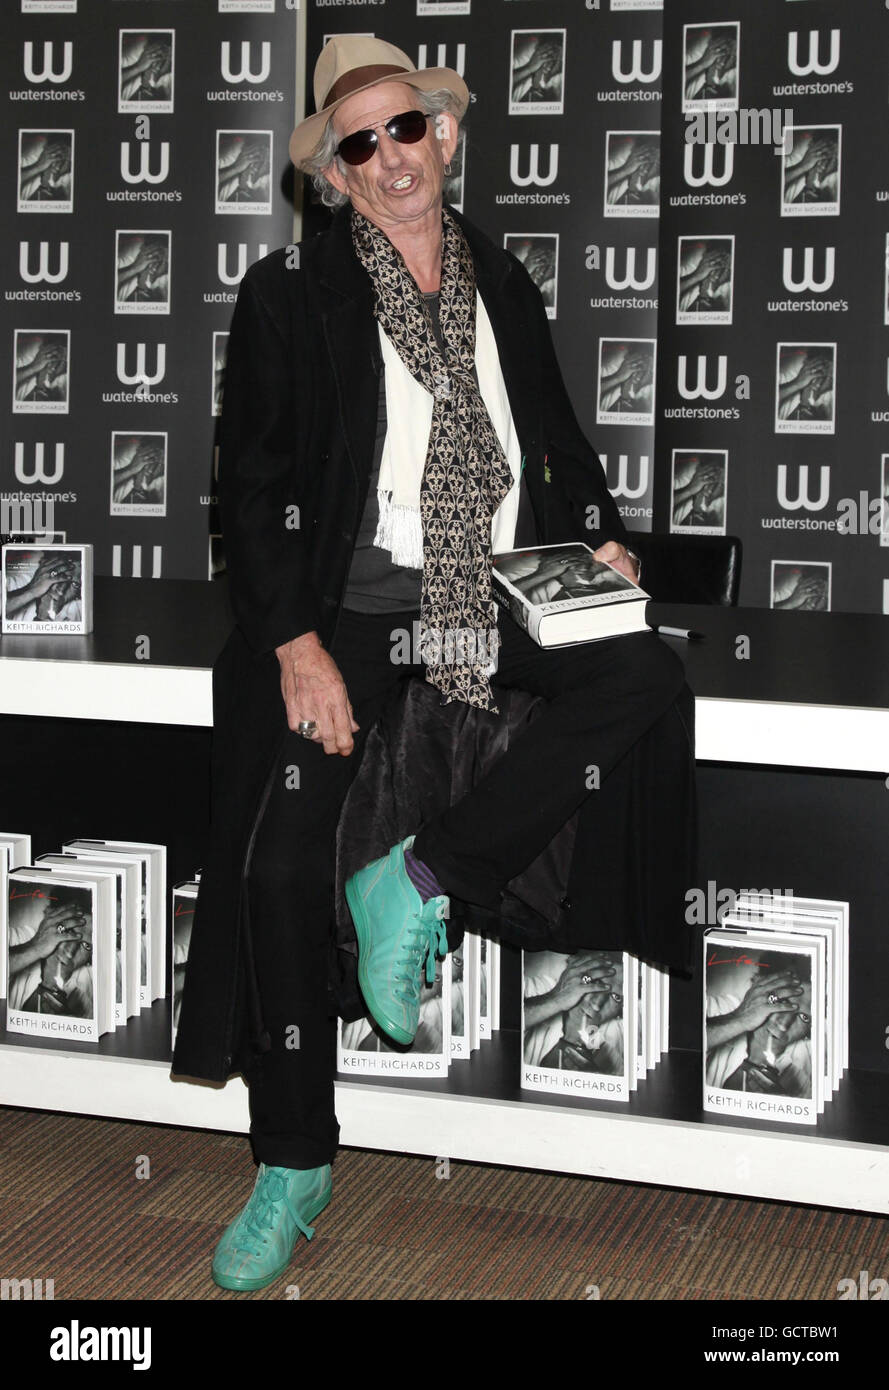 Libro De Keith Richards Keith Richards Firma De Libros Londres Foto Imagen De Stock